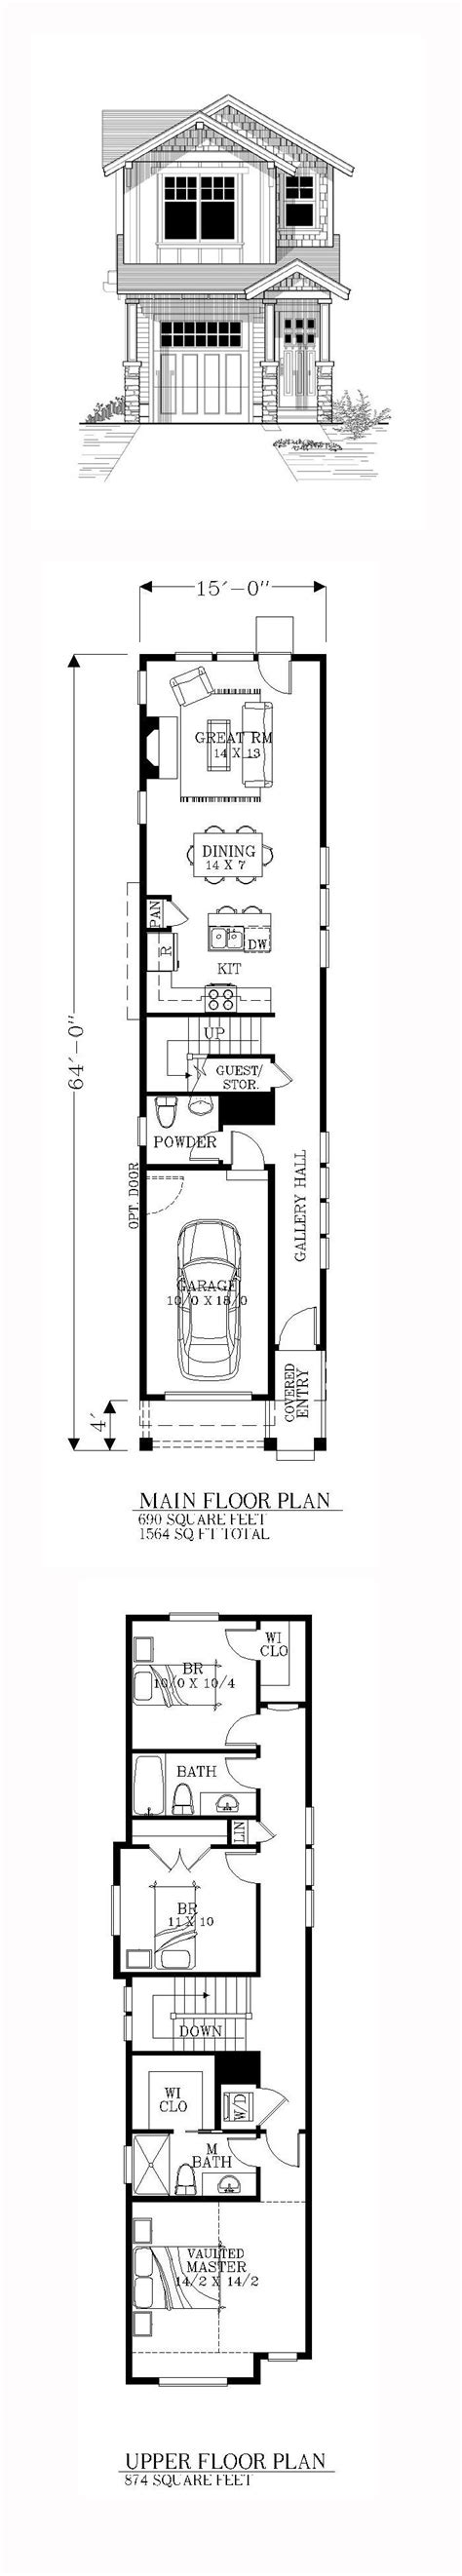 narrow width house plans 25 best ideas about narrow house plans on pinterest